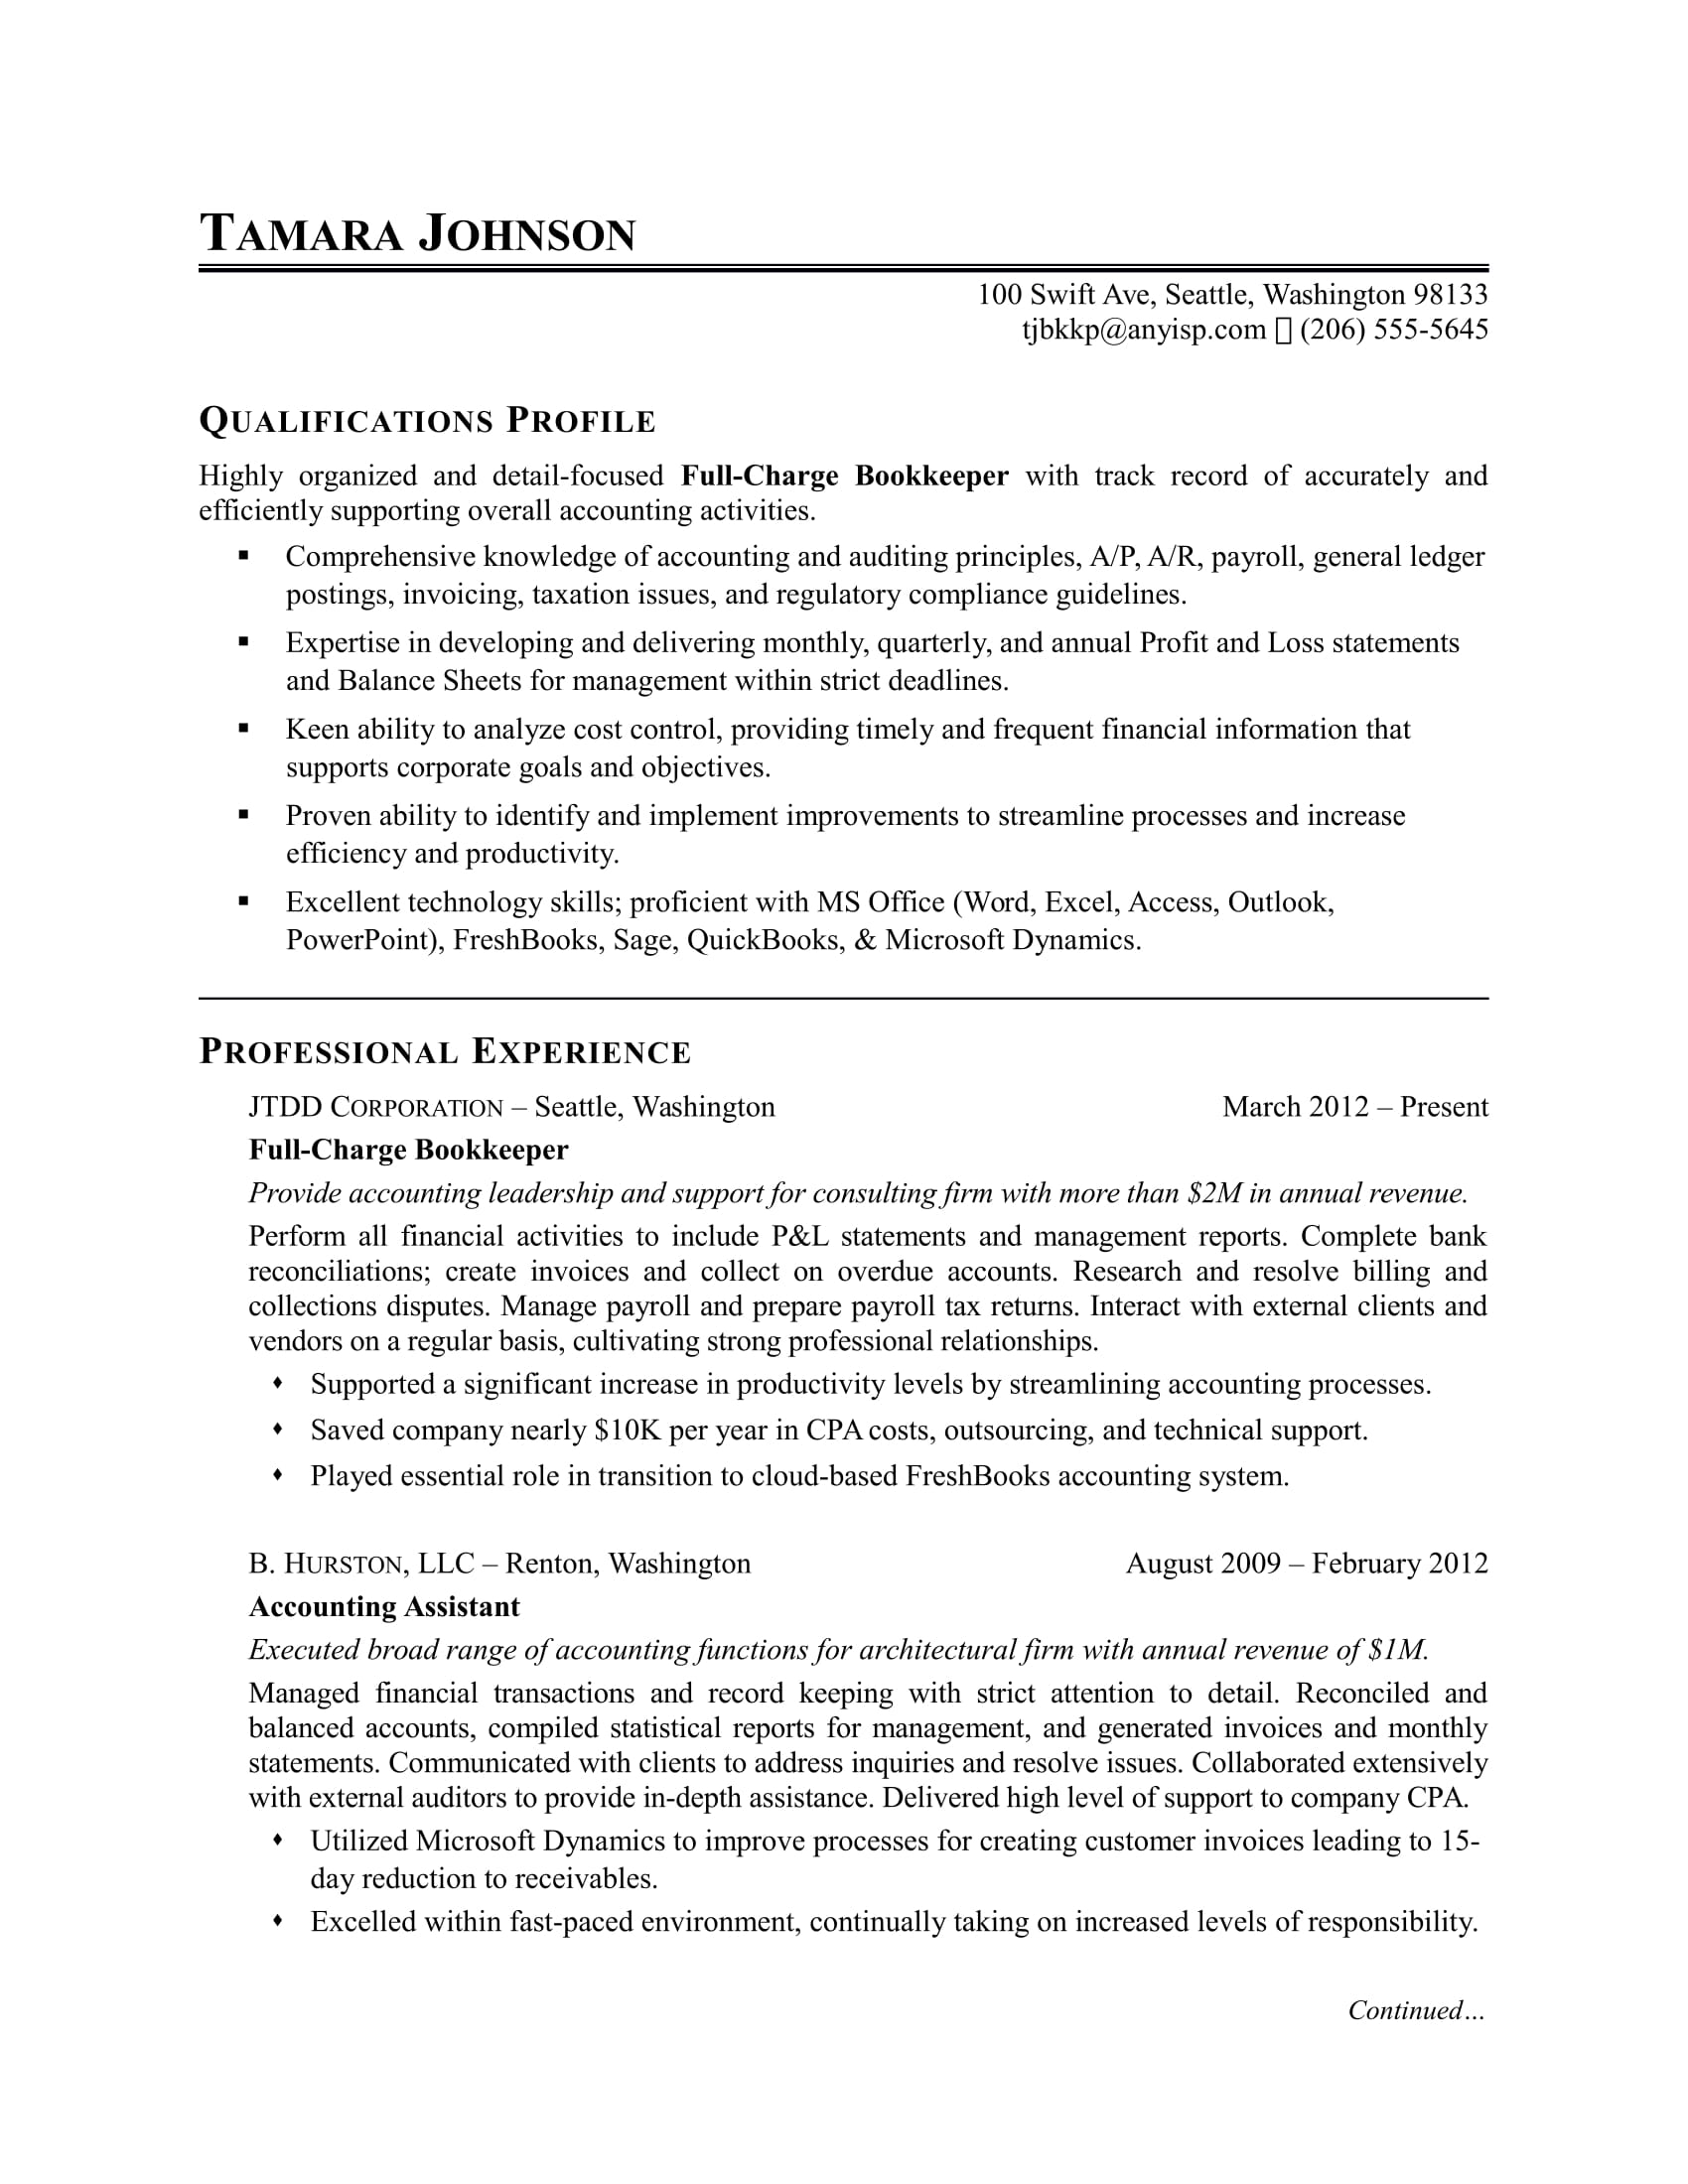 Bookkeeper Resume Sample  MonsterCom